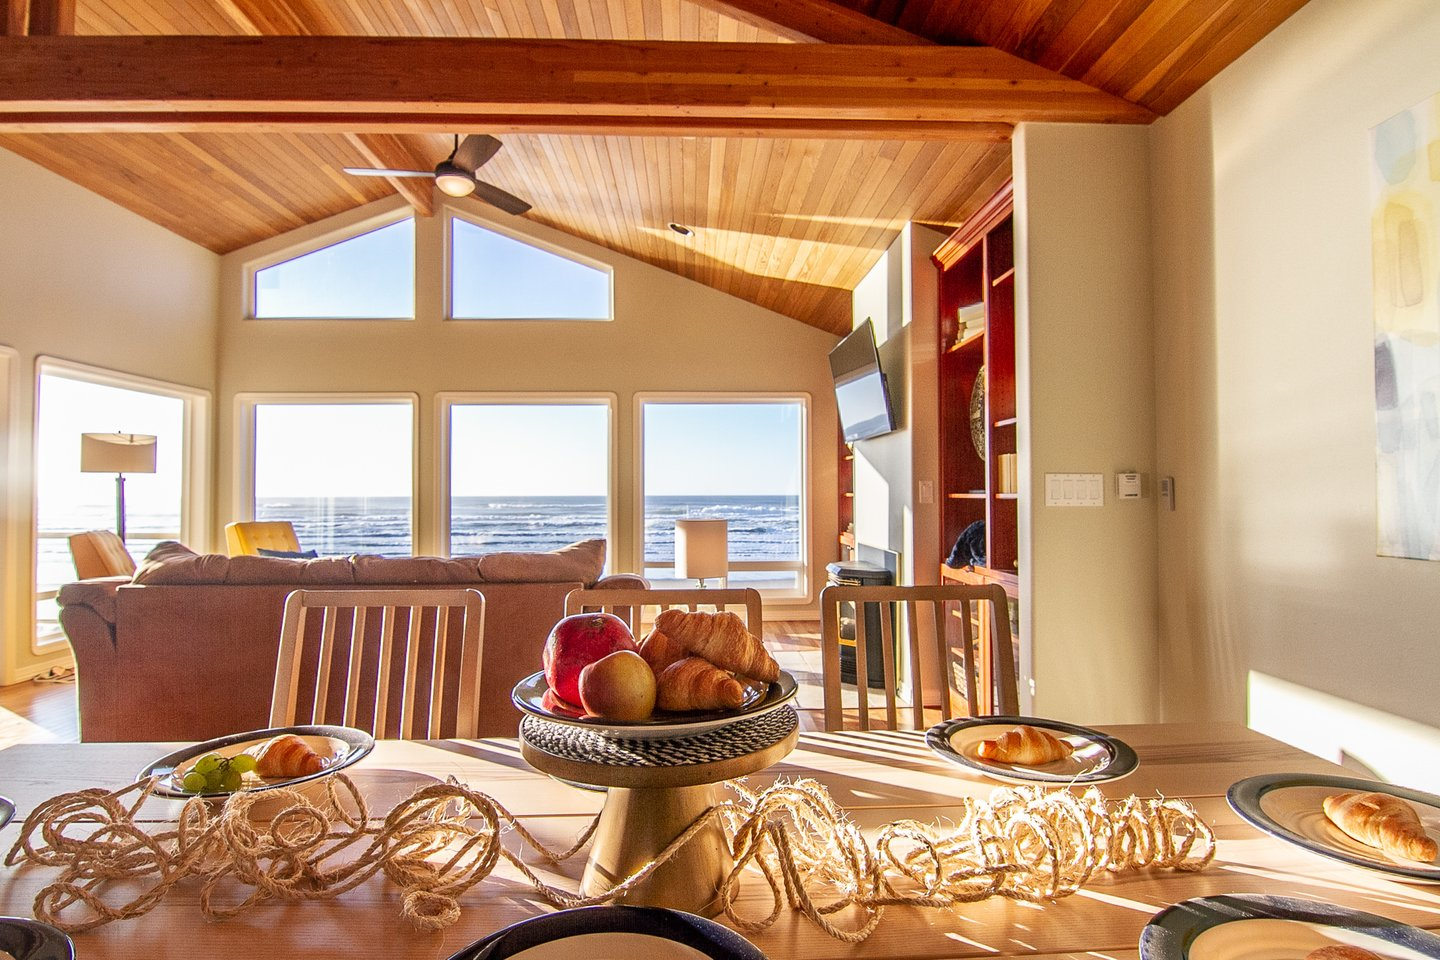 Dine with natural light and an ocean view!